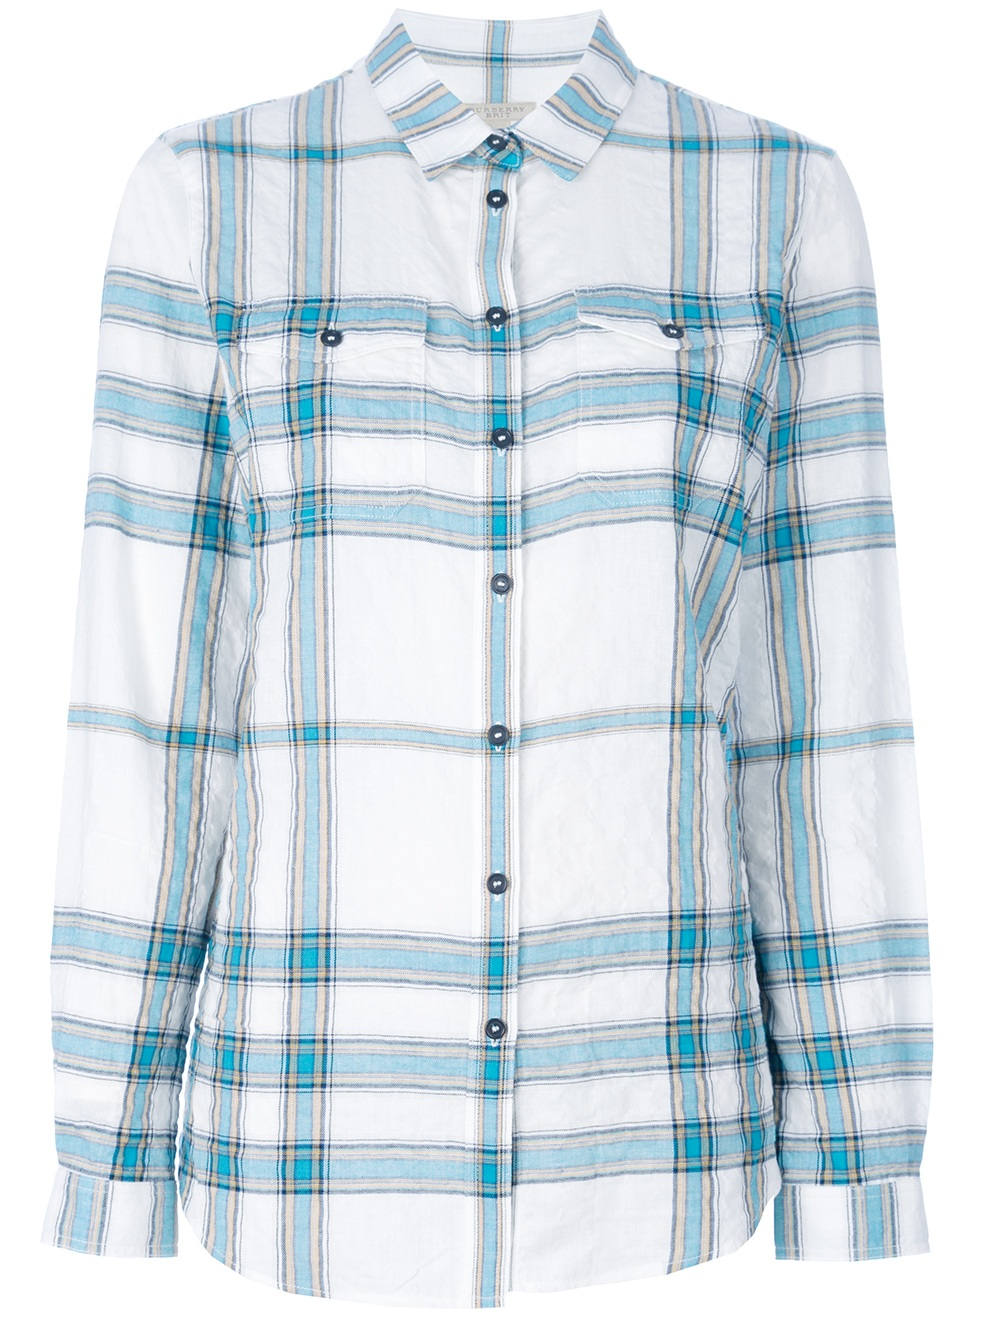 Burberry brit plaid shirt in blue lyst for Burberry brit checked shirt